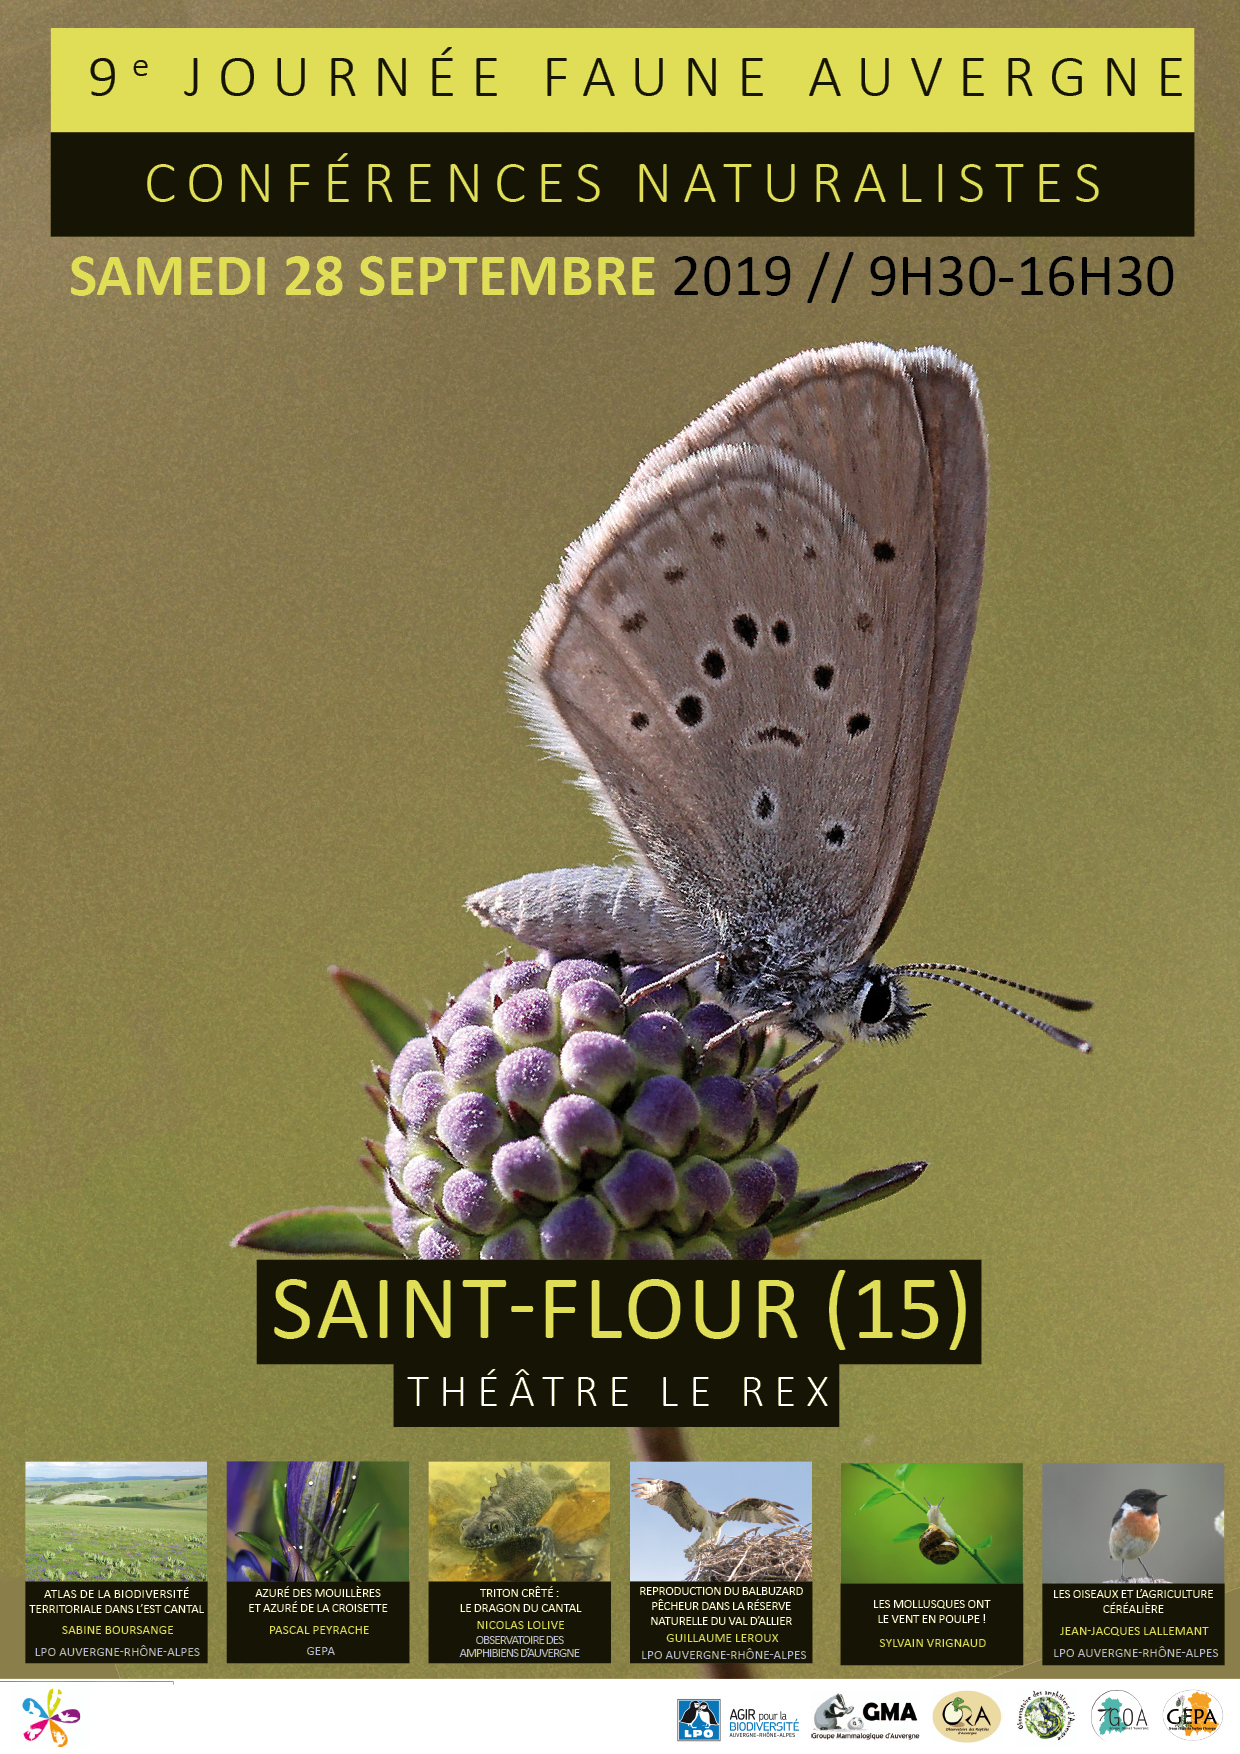 http://files.biolovision.net/www.faune-auvergne.org/userfiles/affichejfa2019.jpg